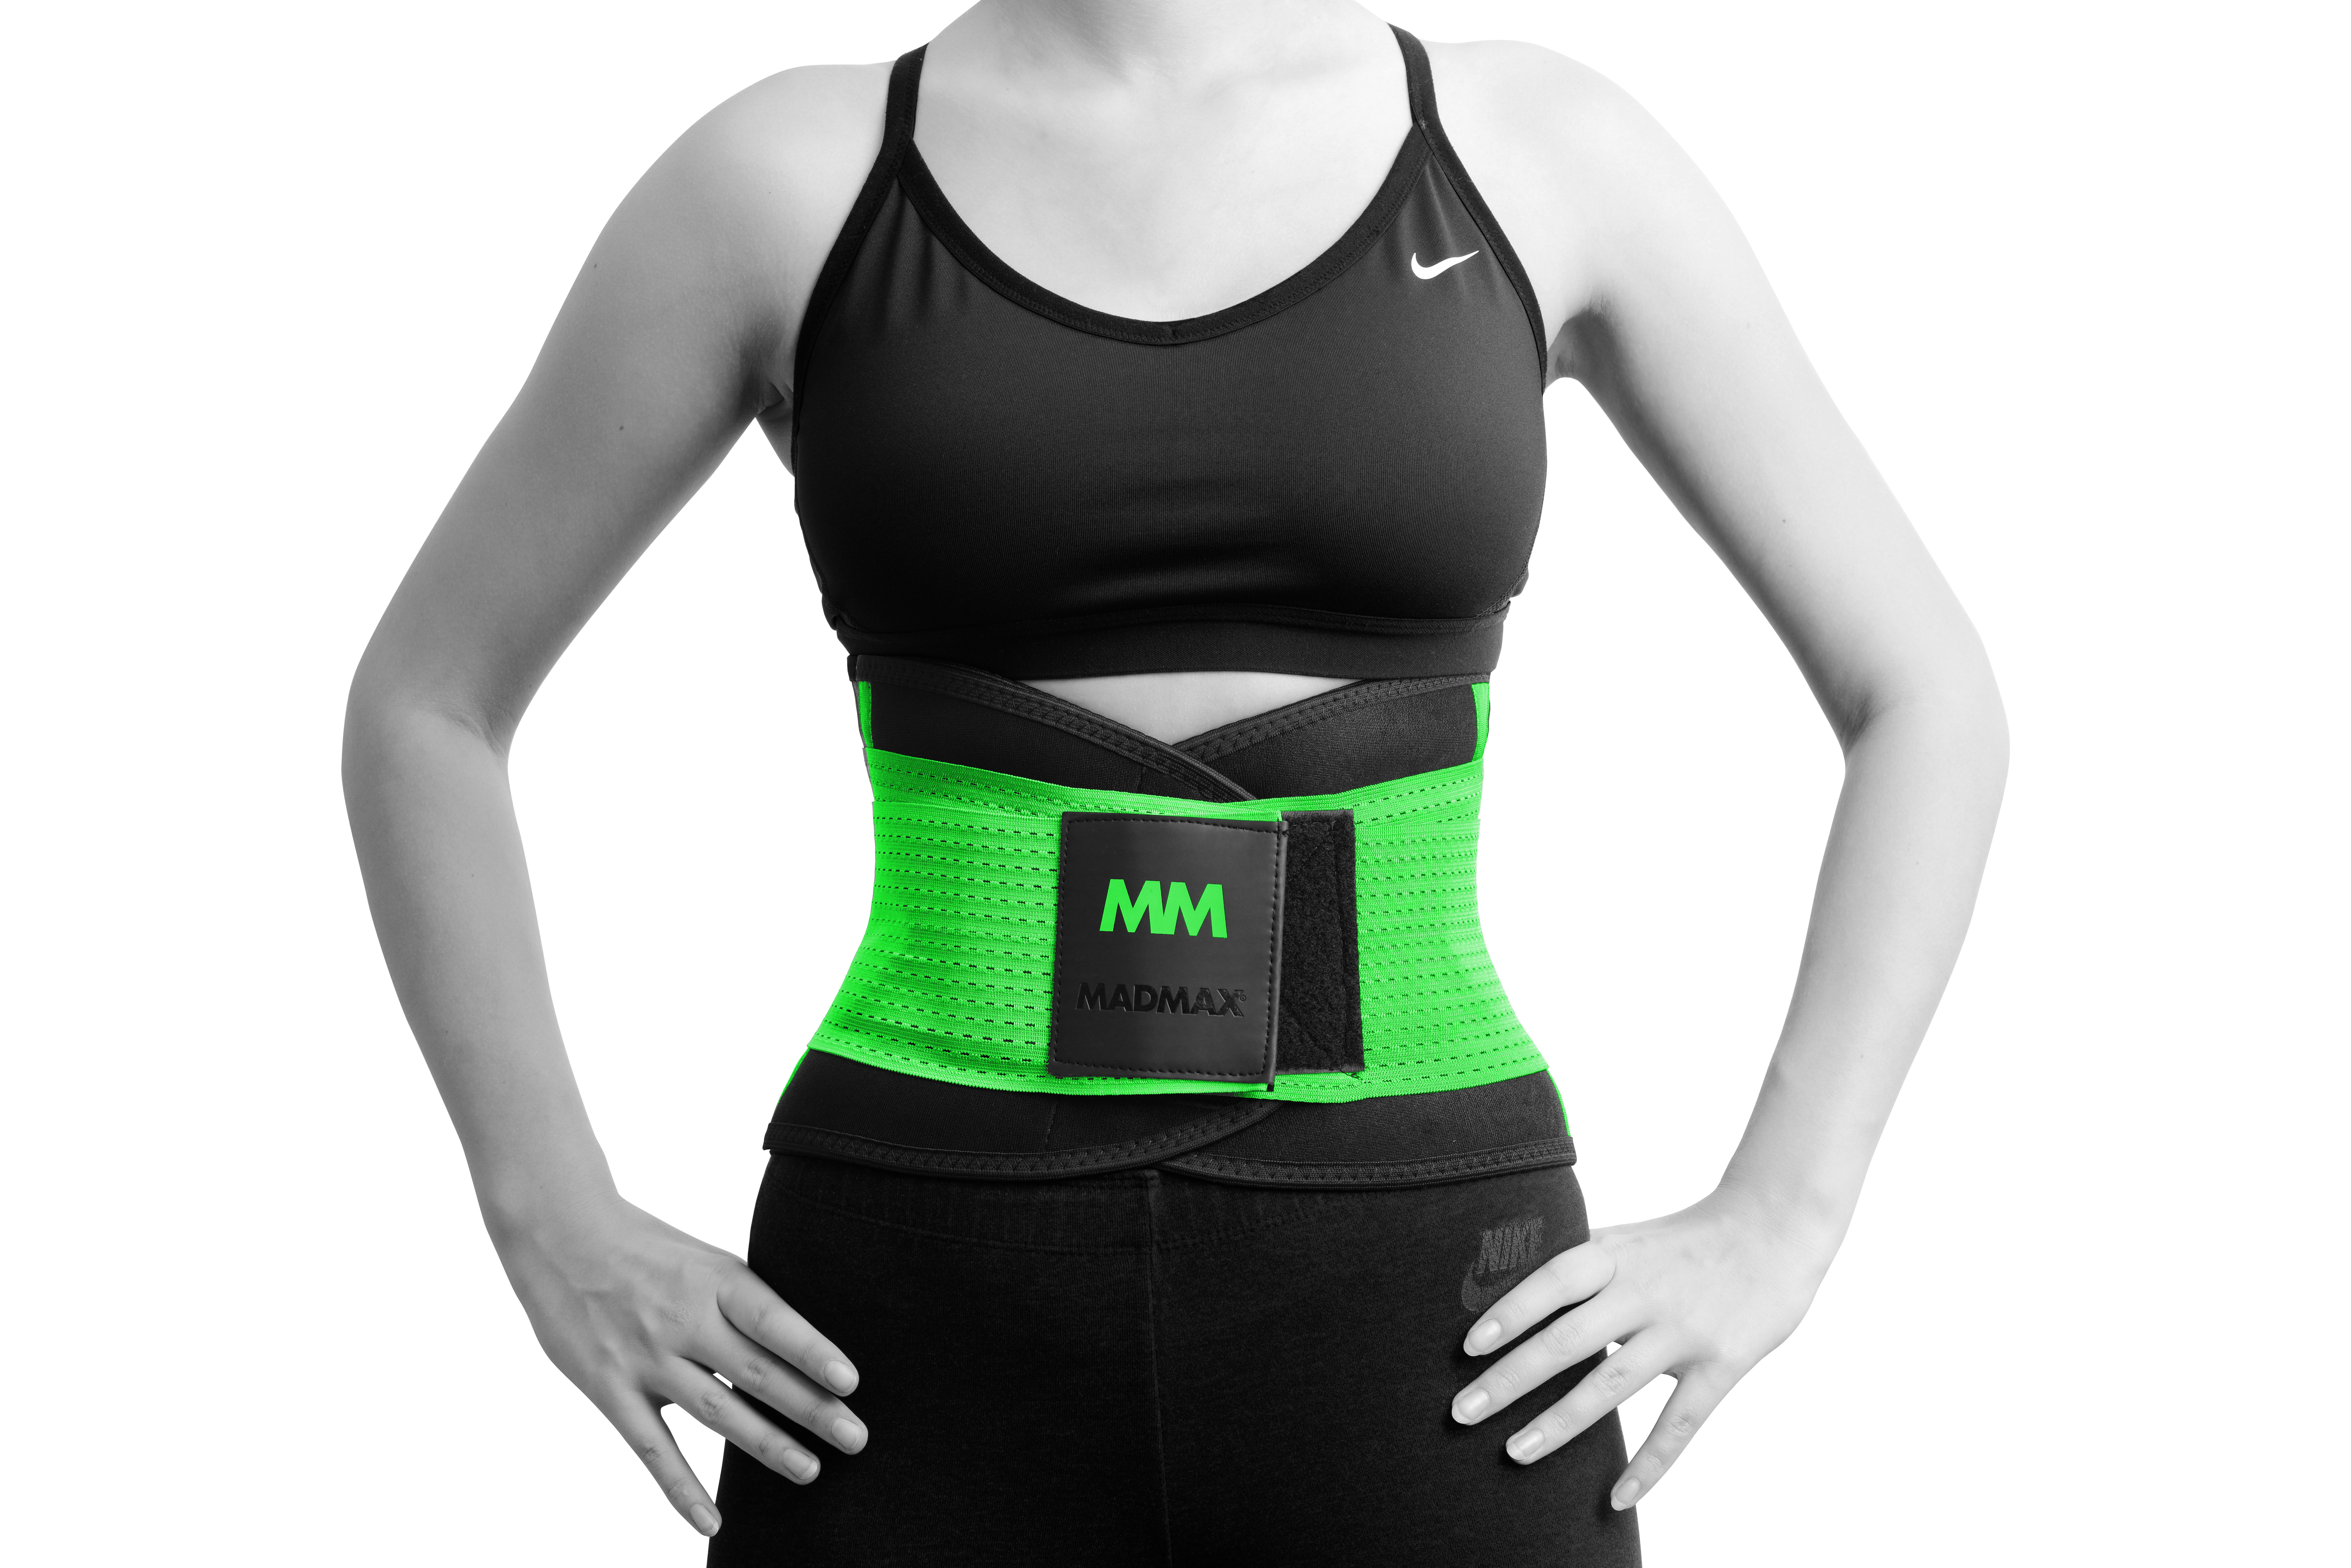 MADMAX Slimming and Support Belt